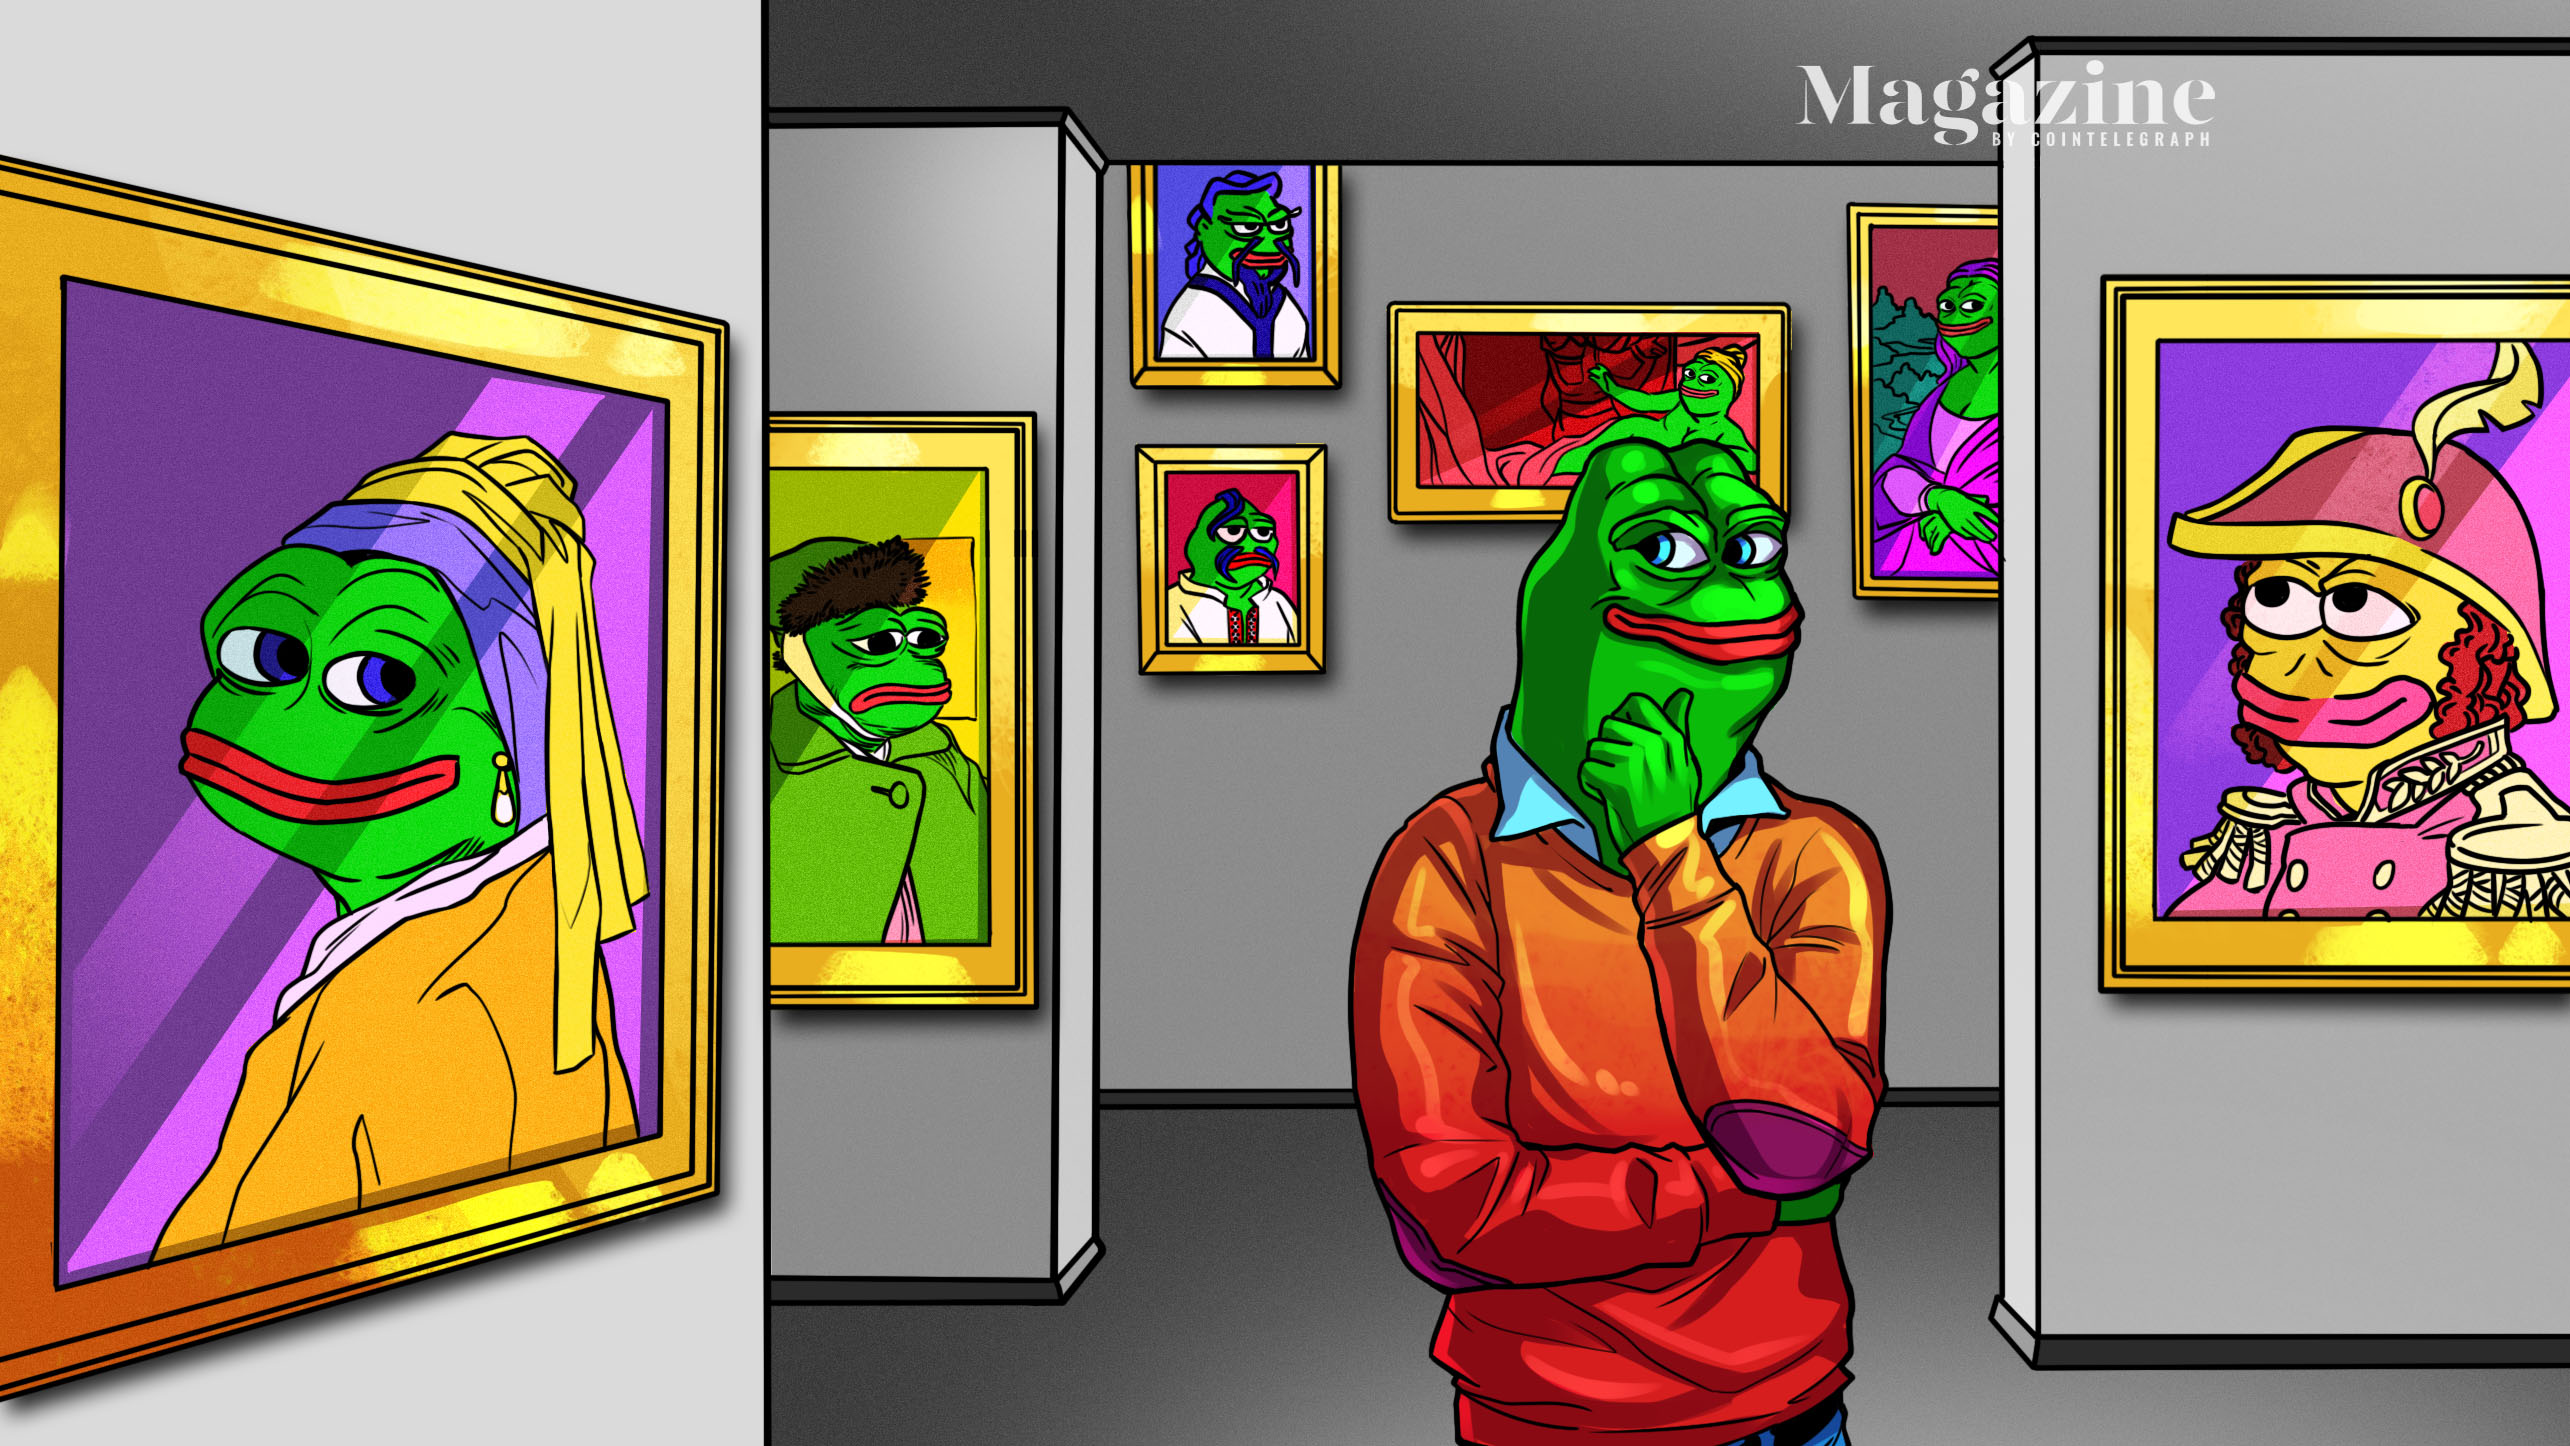 What does the frog meme? – Cointelegraph Magazine